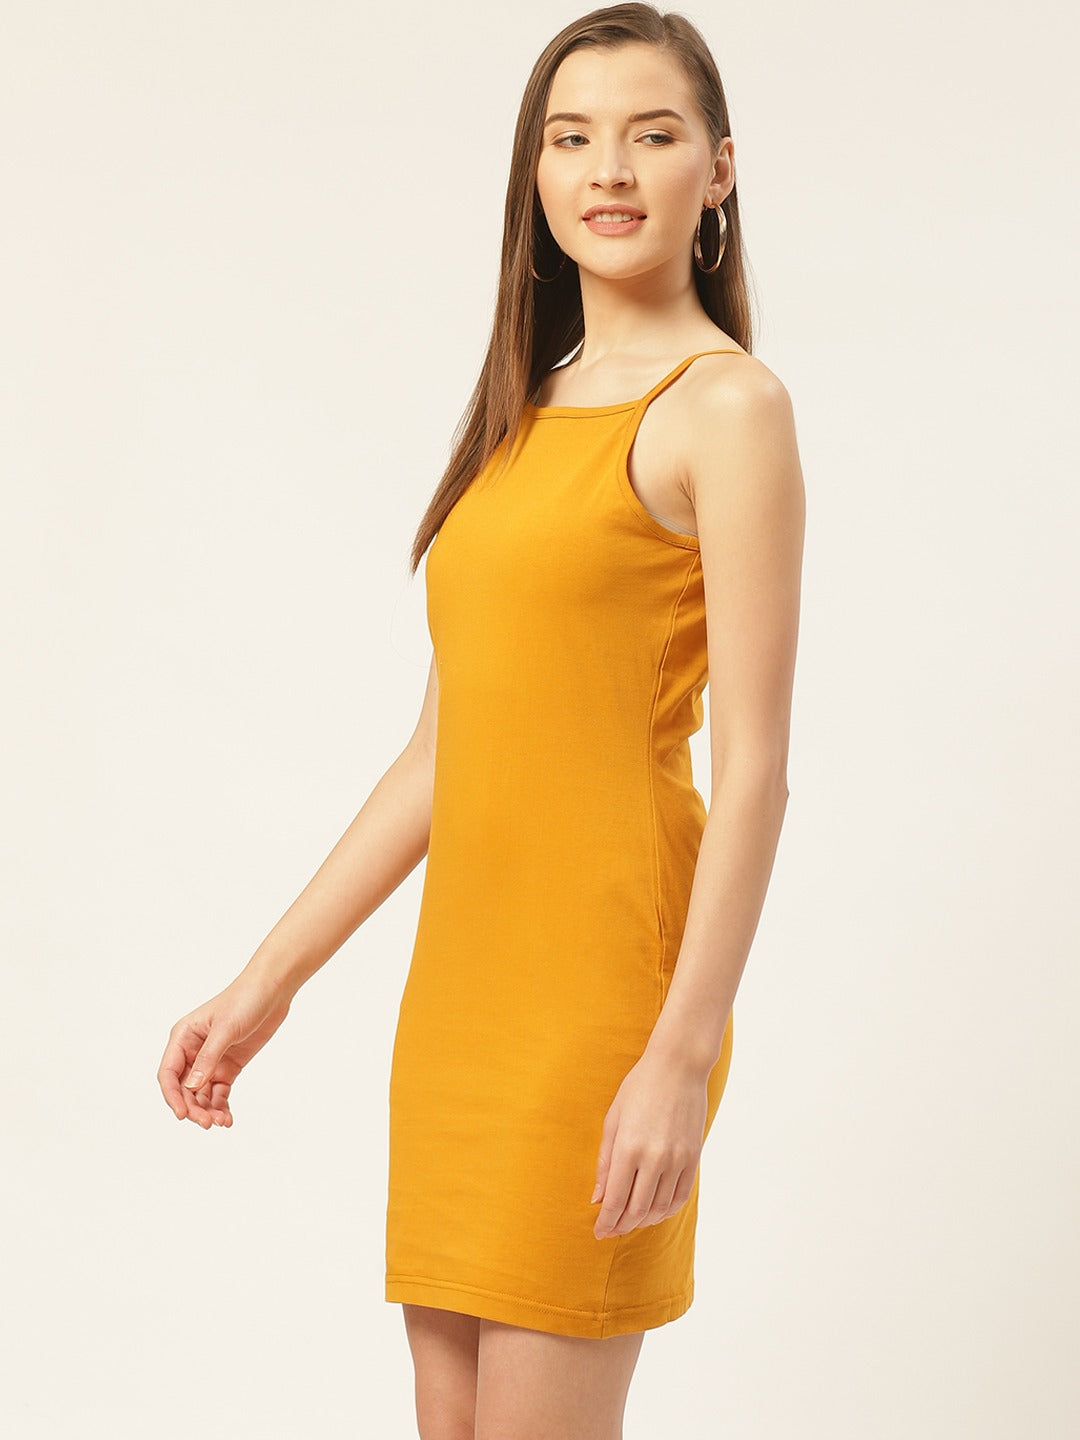 Solid Mustard Dress